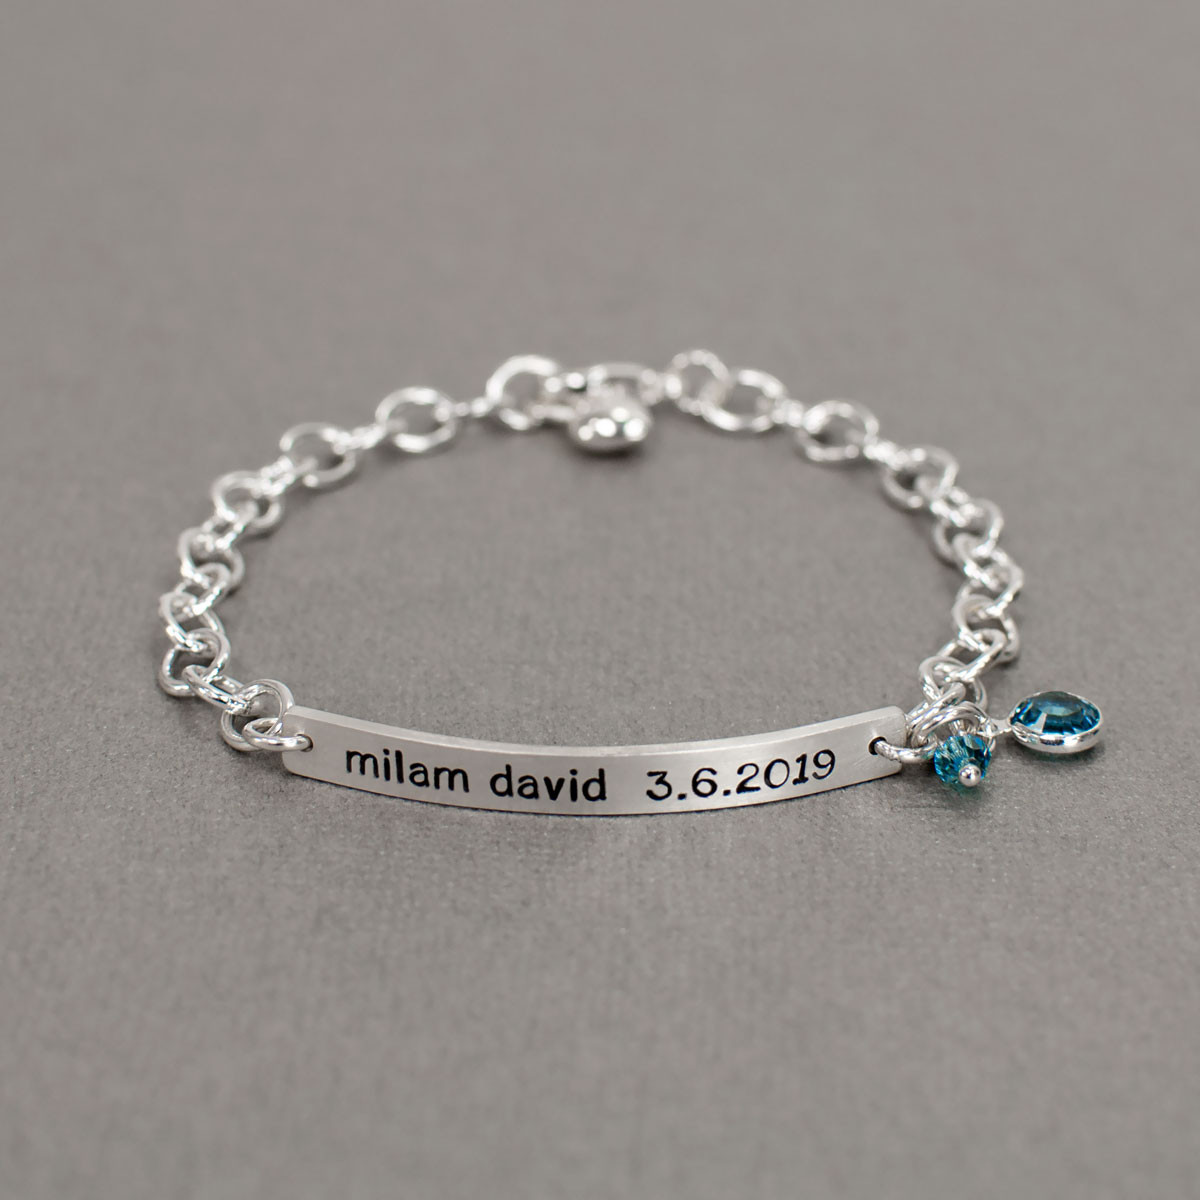 Hand stamped ID Bracelet made from sterling silver, shown with birthstone on gray